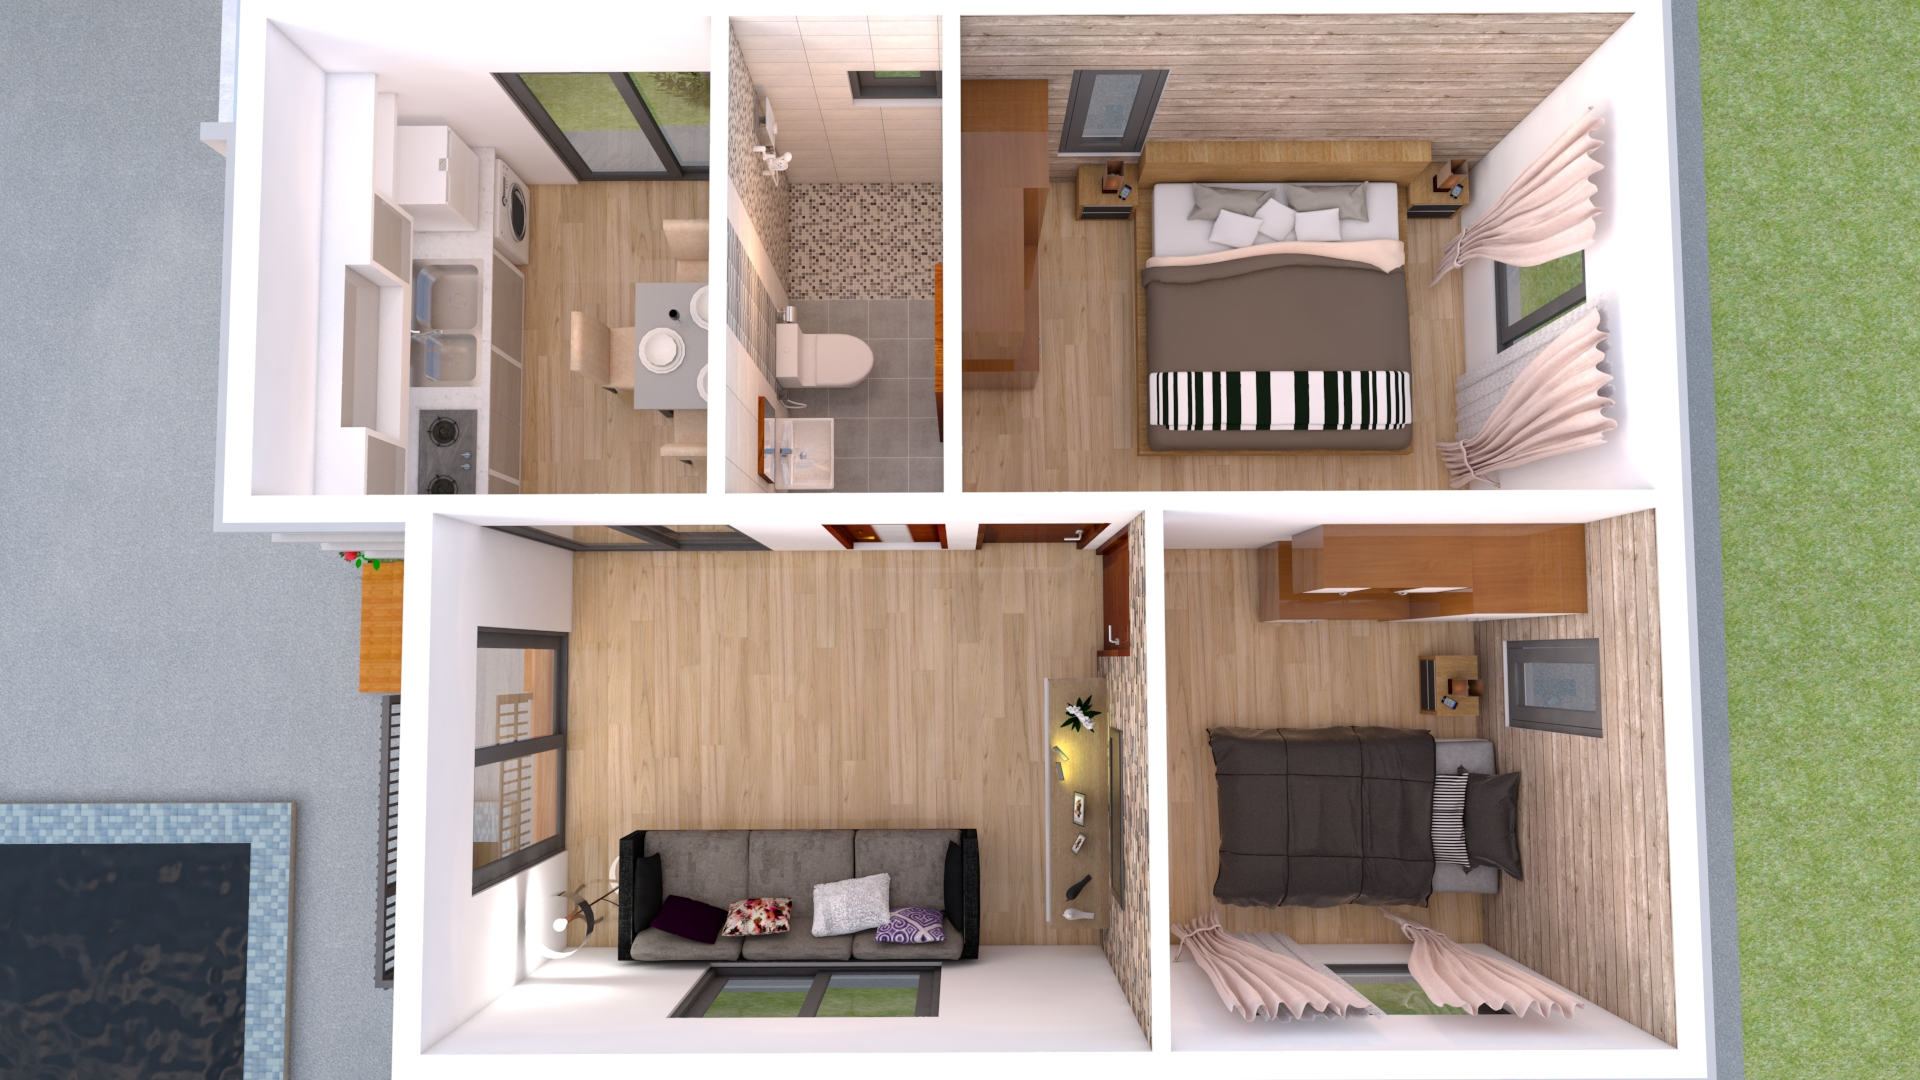 House Design 6x8 with 2 Bedrooms Hip roof